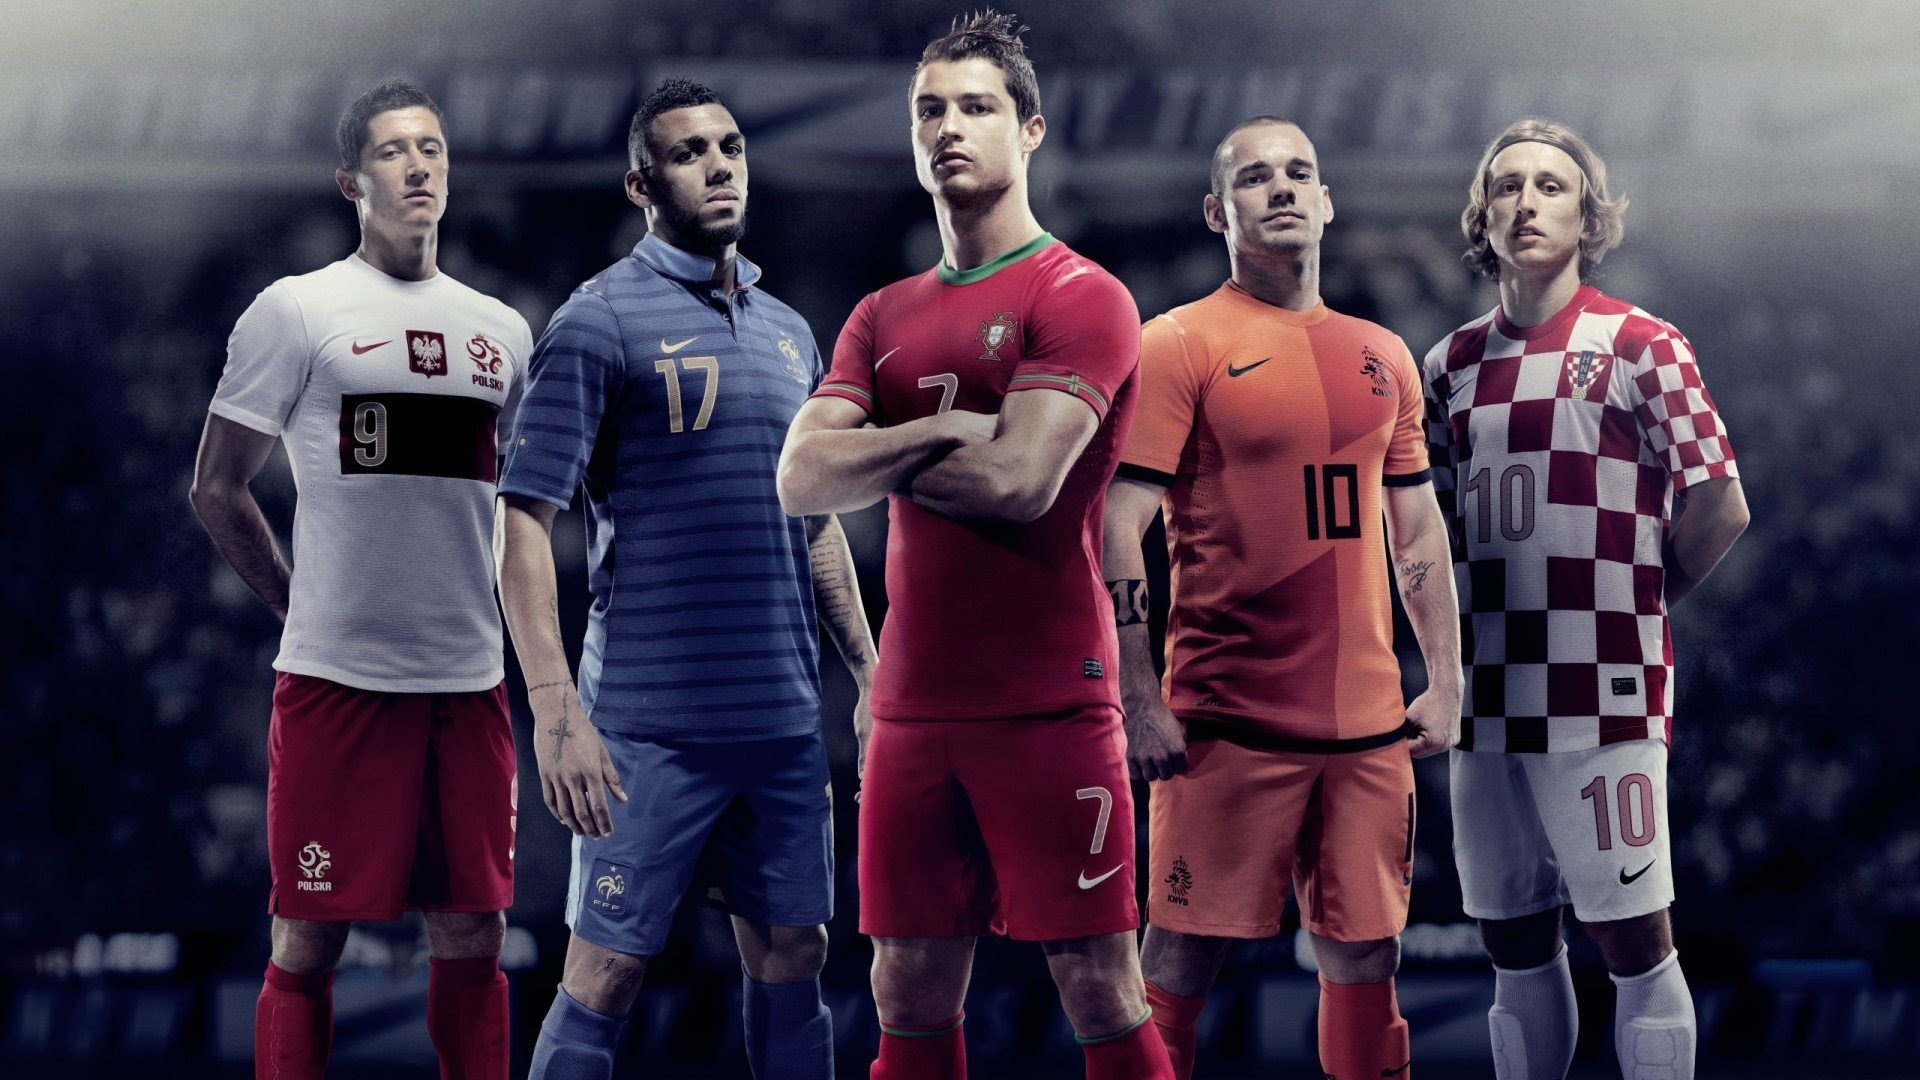 Euro 2012 Best Football Player Wallpaper HD Wallpapers 1920x1080